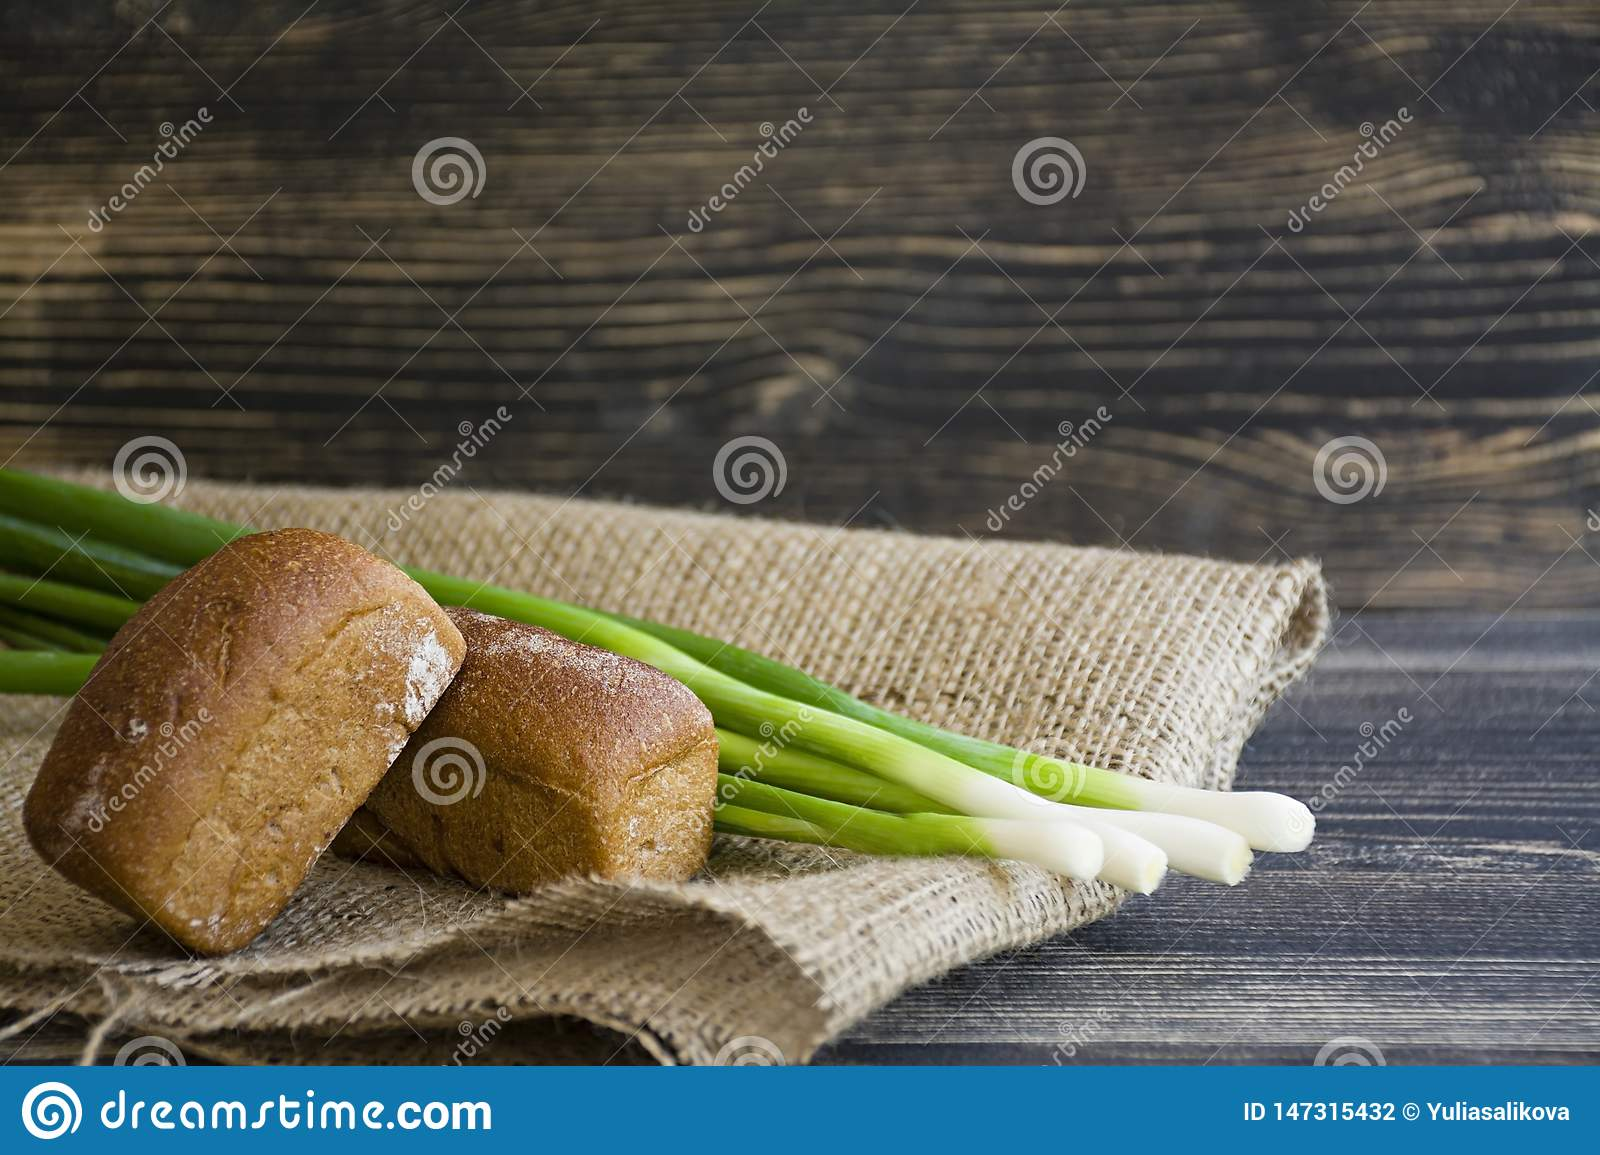 Freshly baked bread and green onion on a dark wooden background